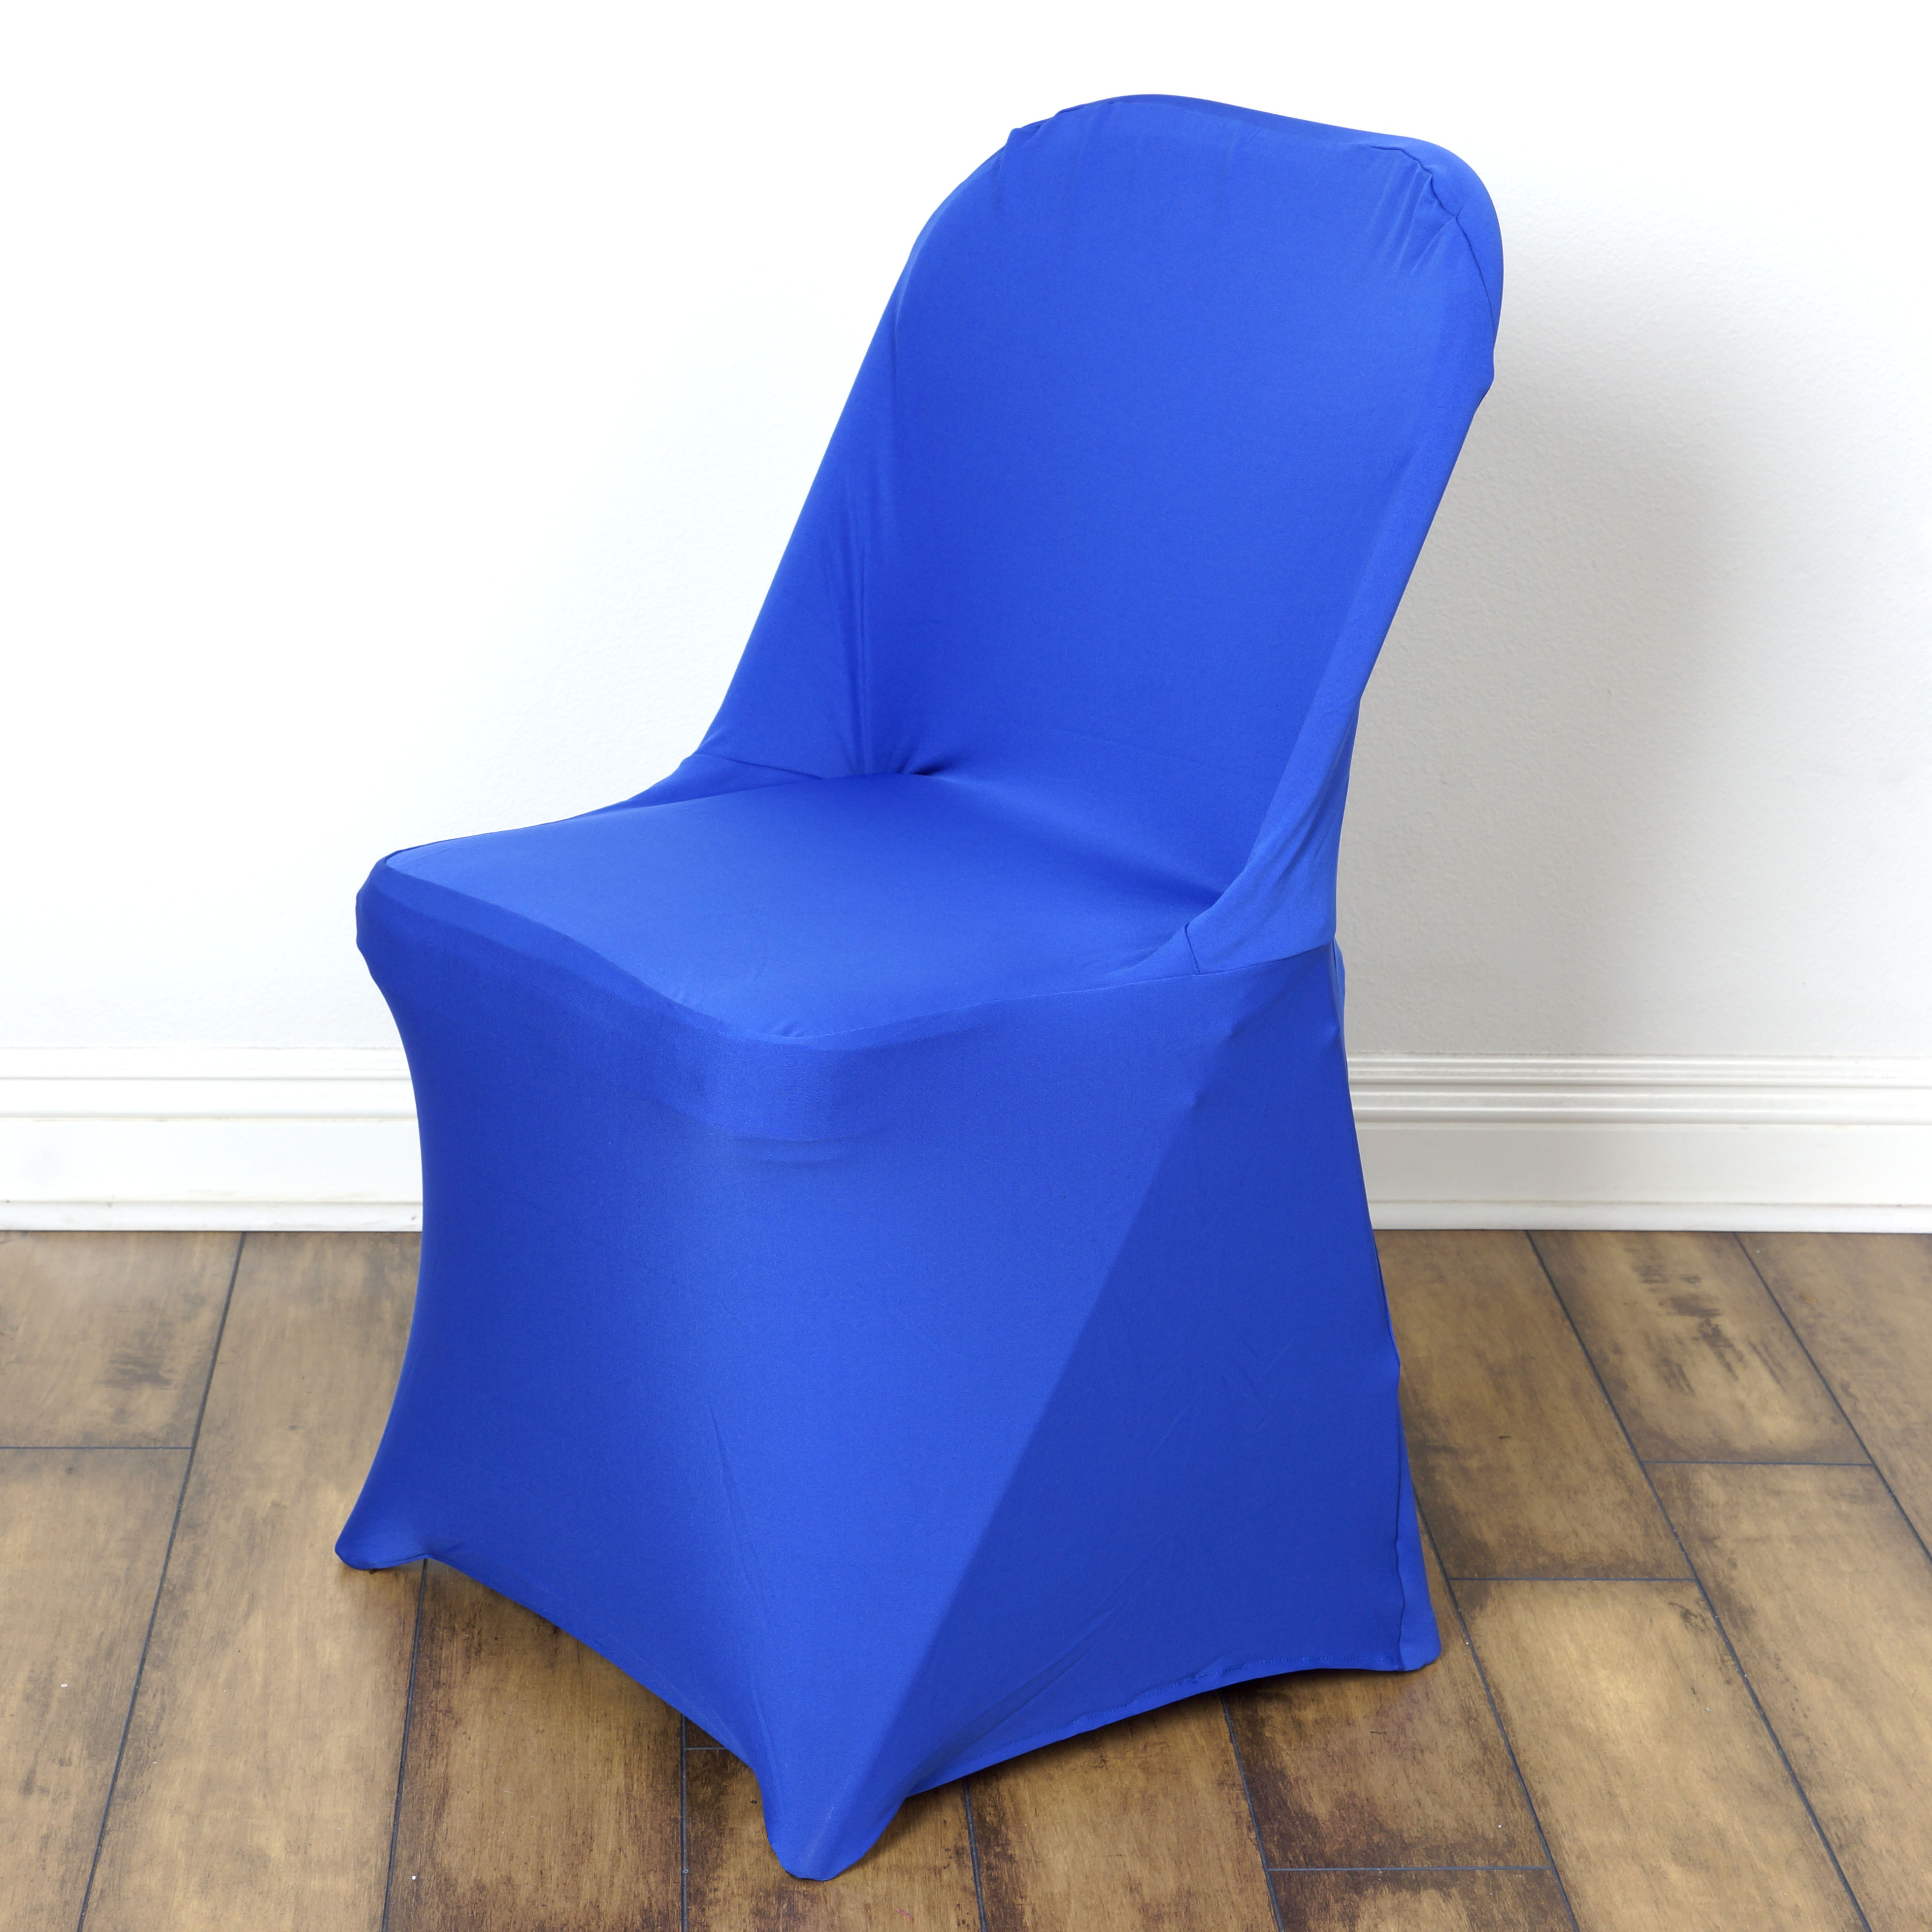 Balsacircle Spandex Stretchable Folding Chair Covers